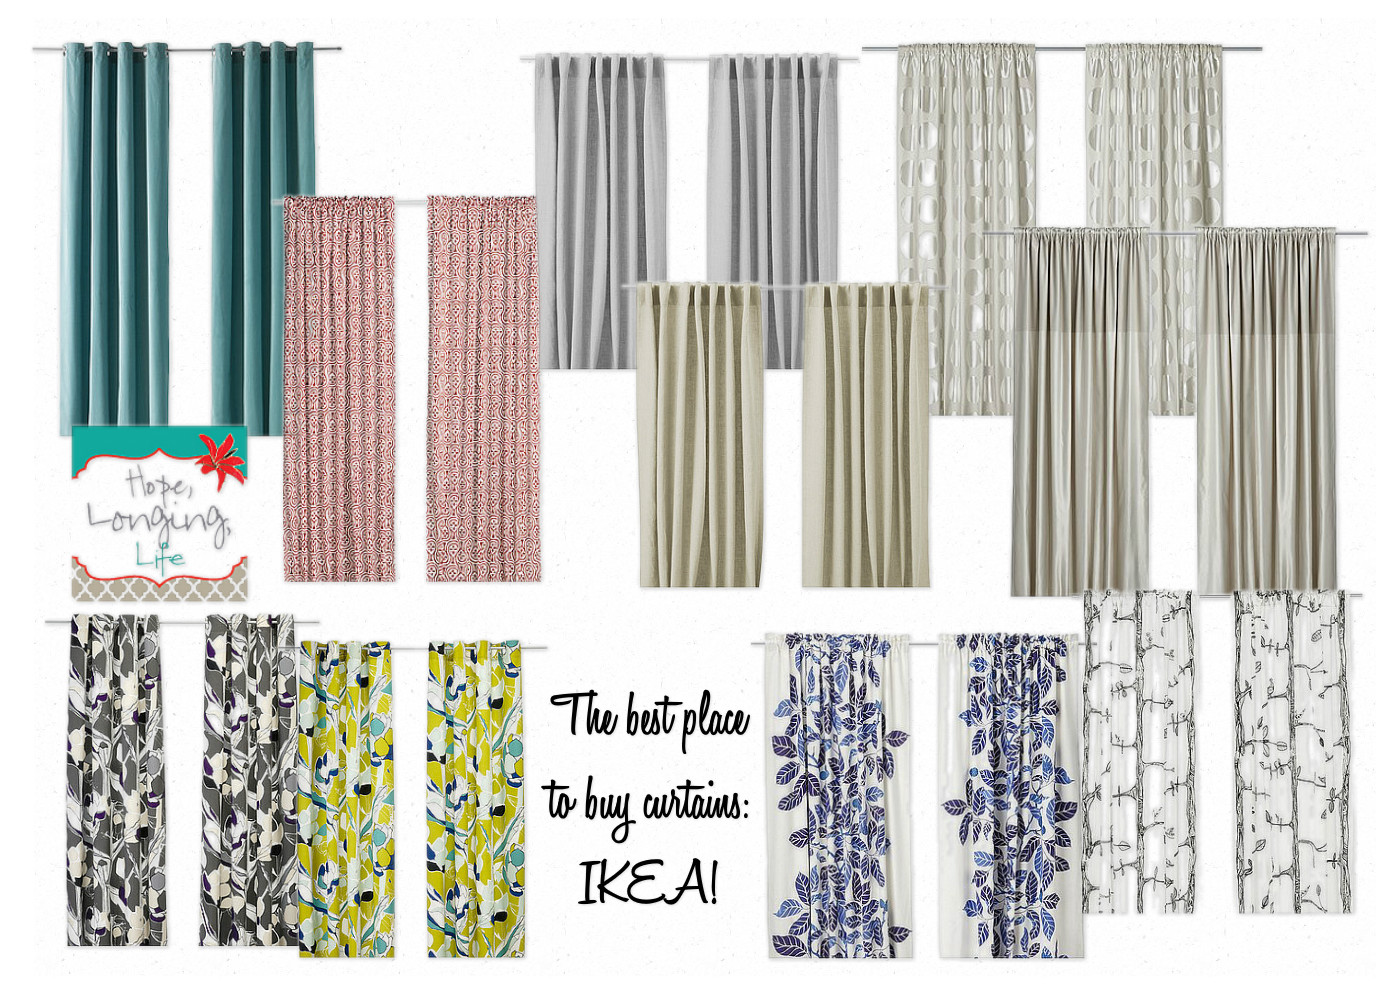 Best Place To Buy Curtains Hope, Longing, Life: Design Secrets: The Best Place To Buy